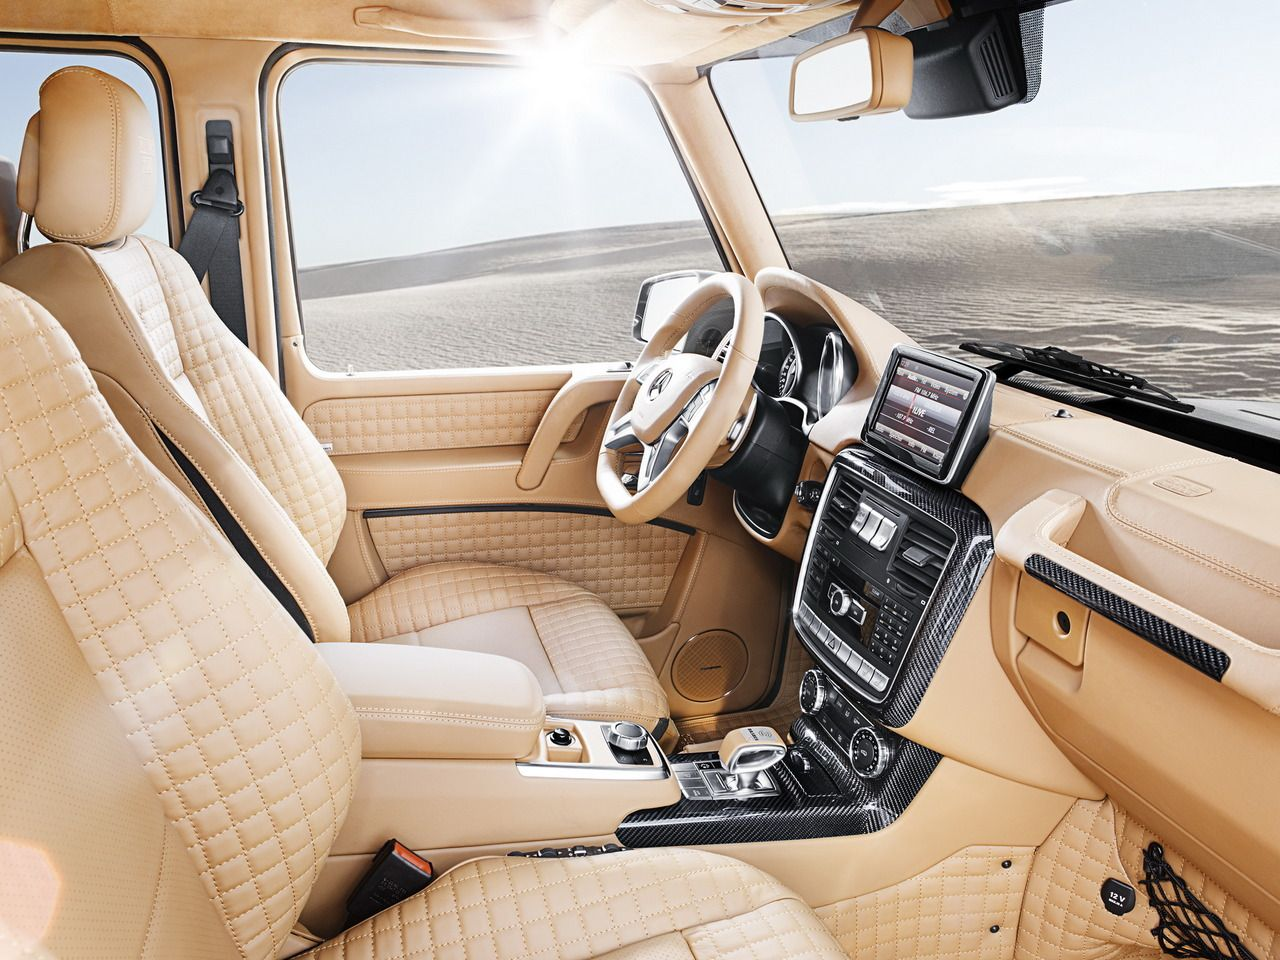 2013 Brabus Mercedes Benz G63 Amg 6x6 With Images Benz Suv